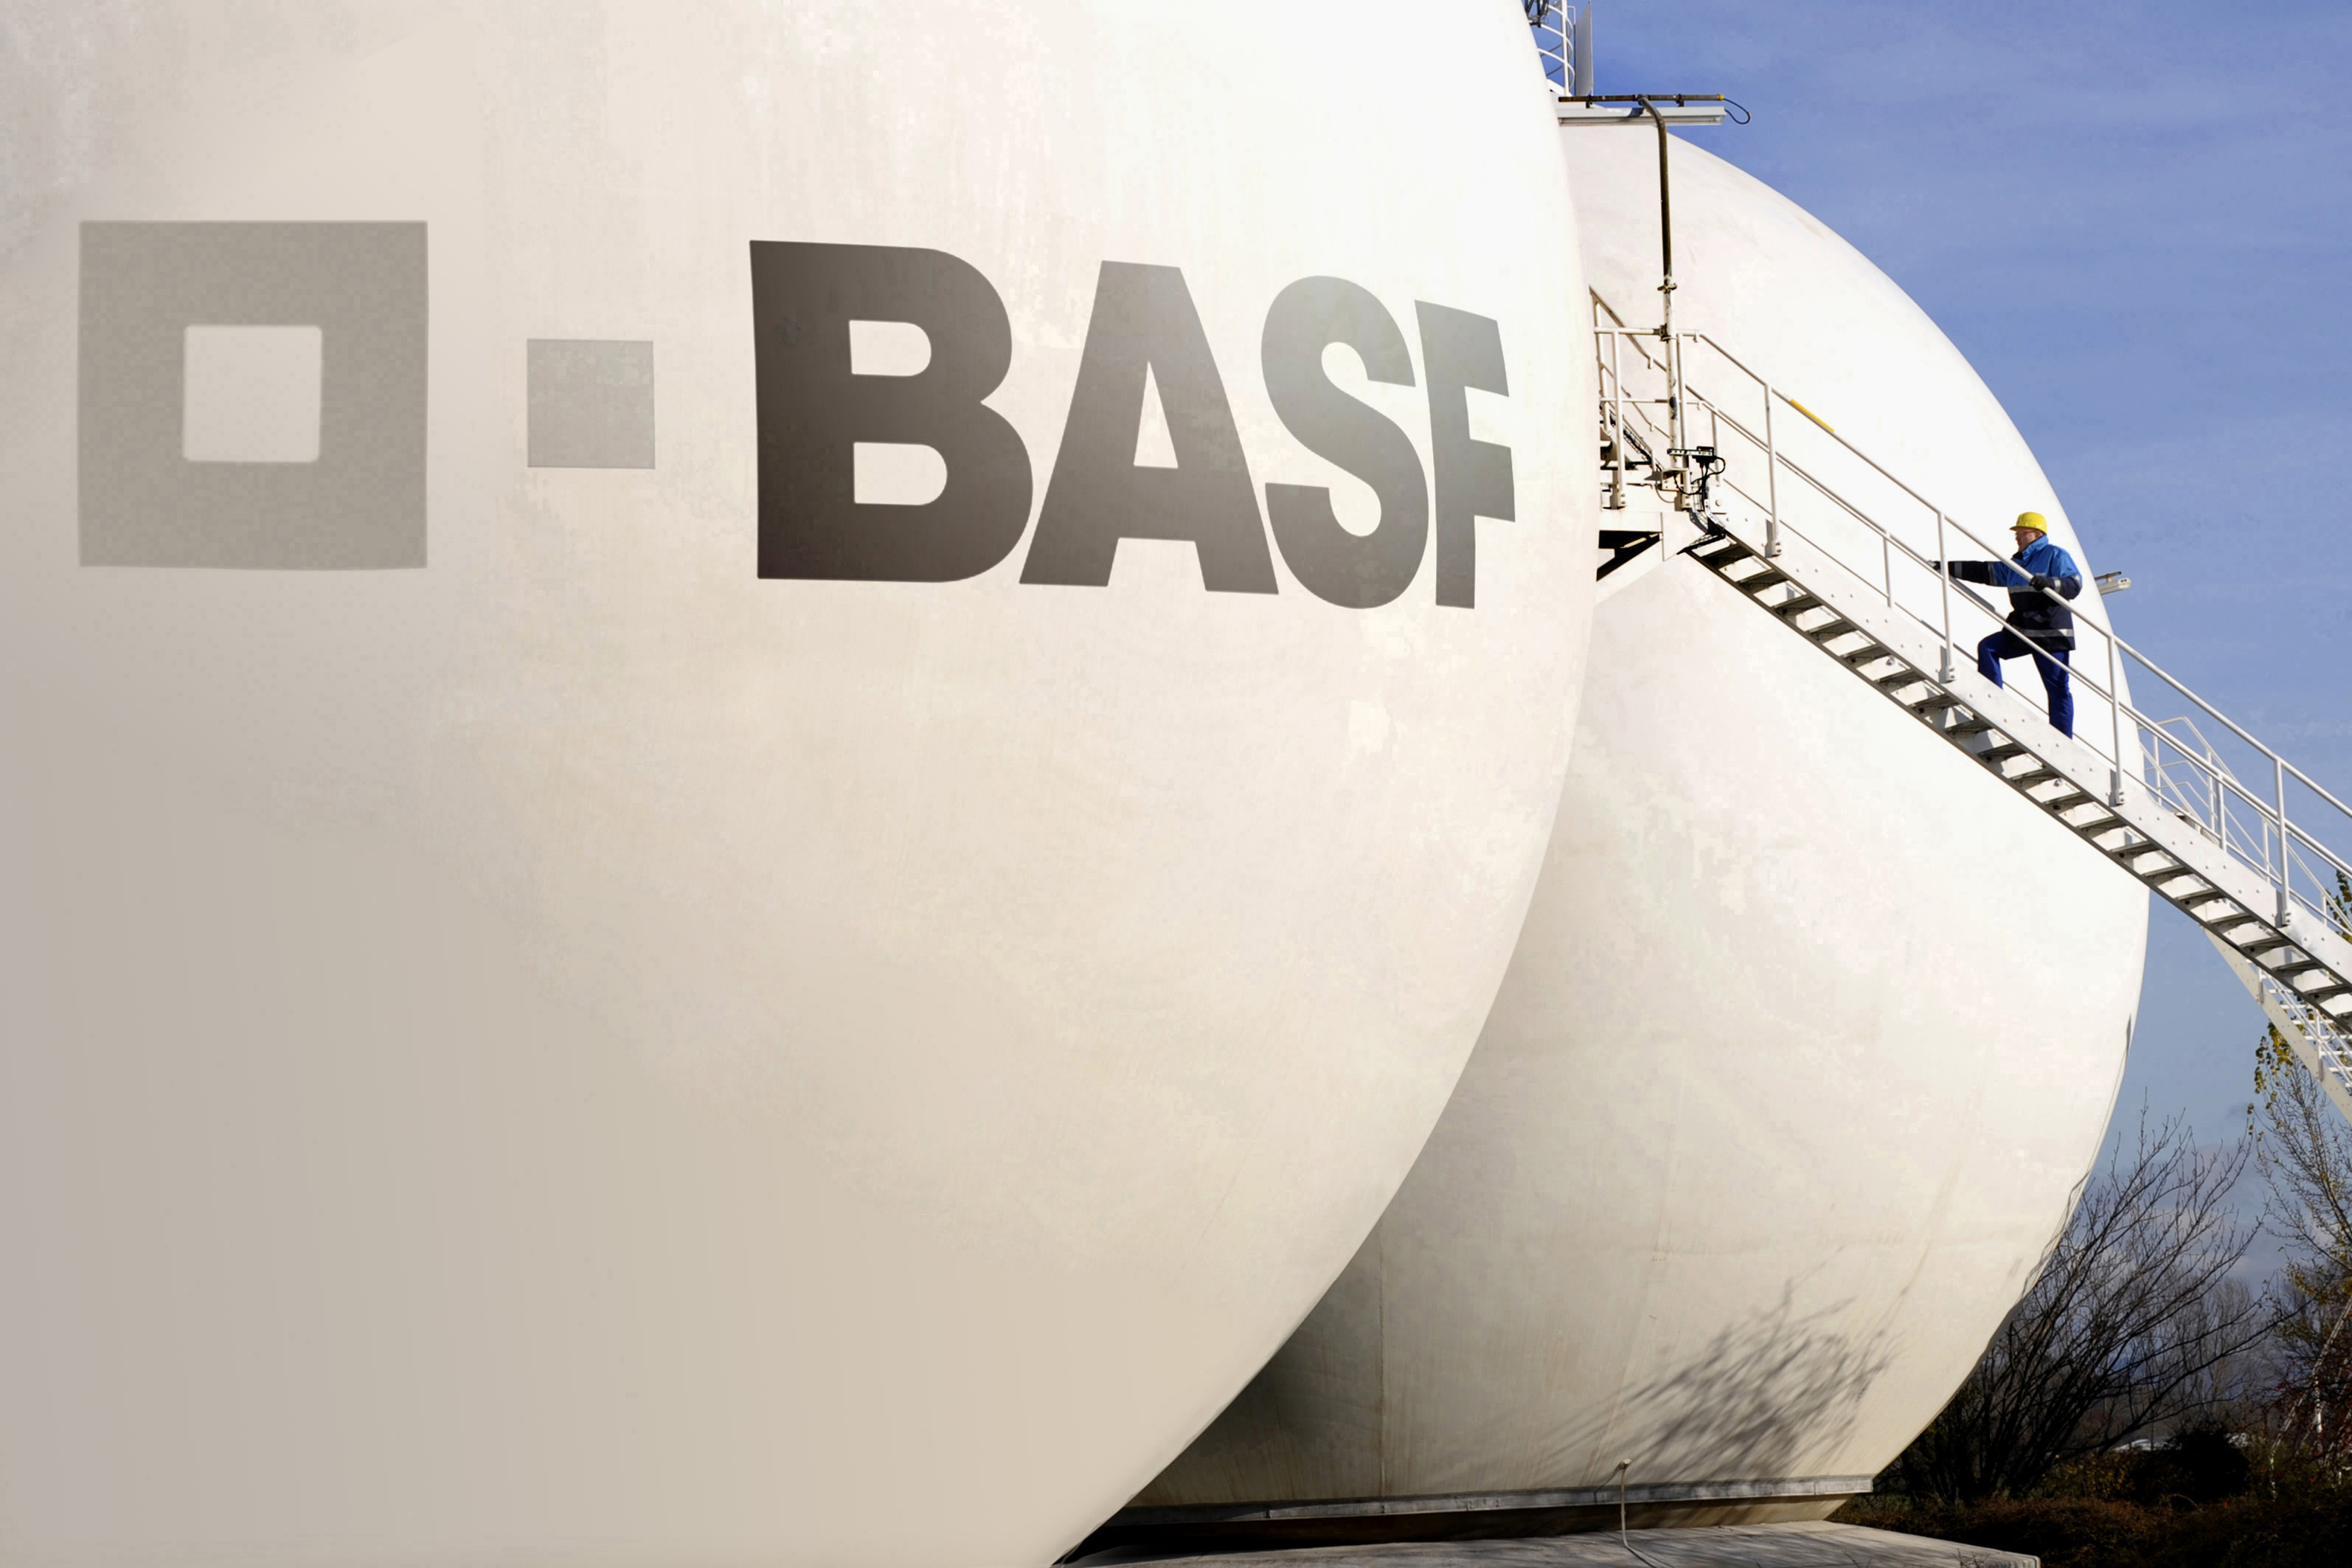 BASF Starts Construction of NEW MDI Synthesis Unit in Louisiana